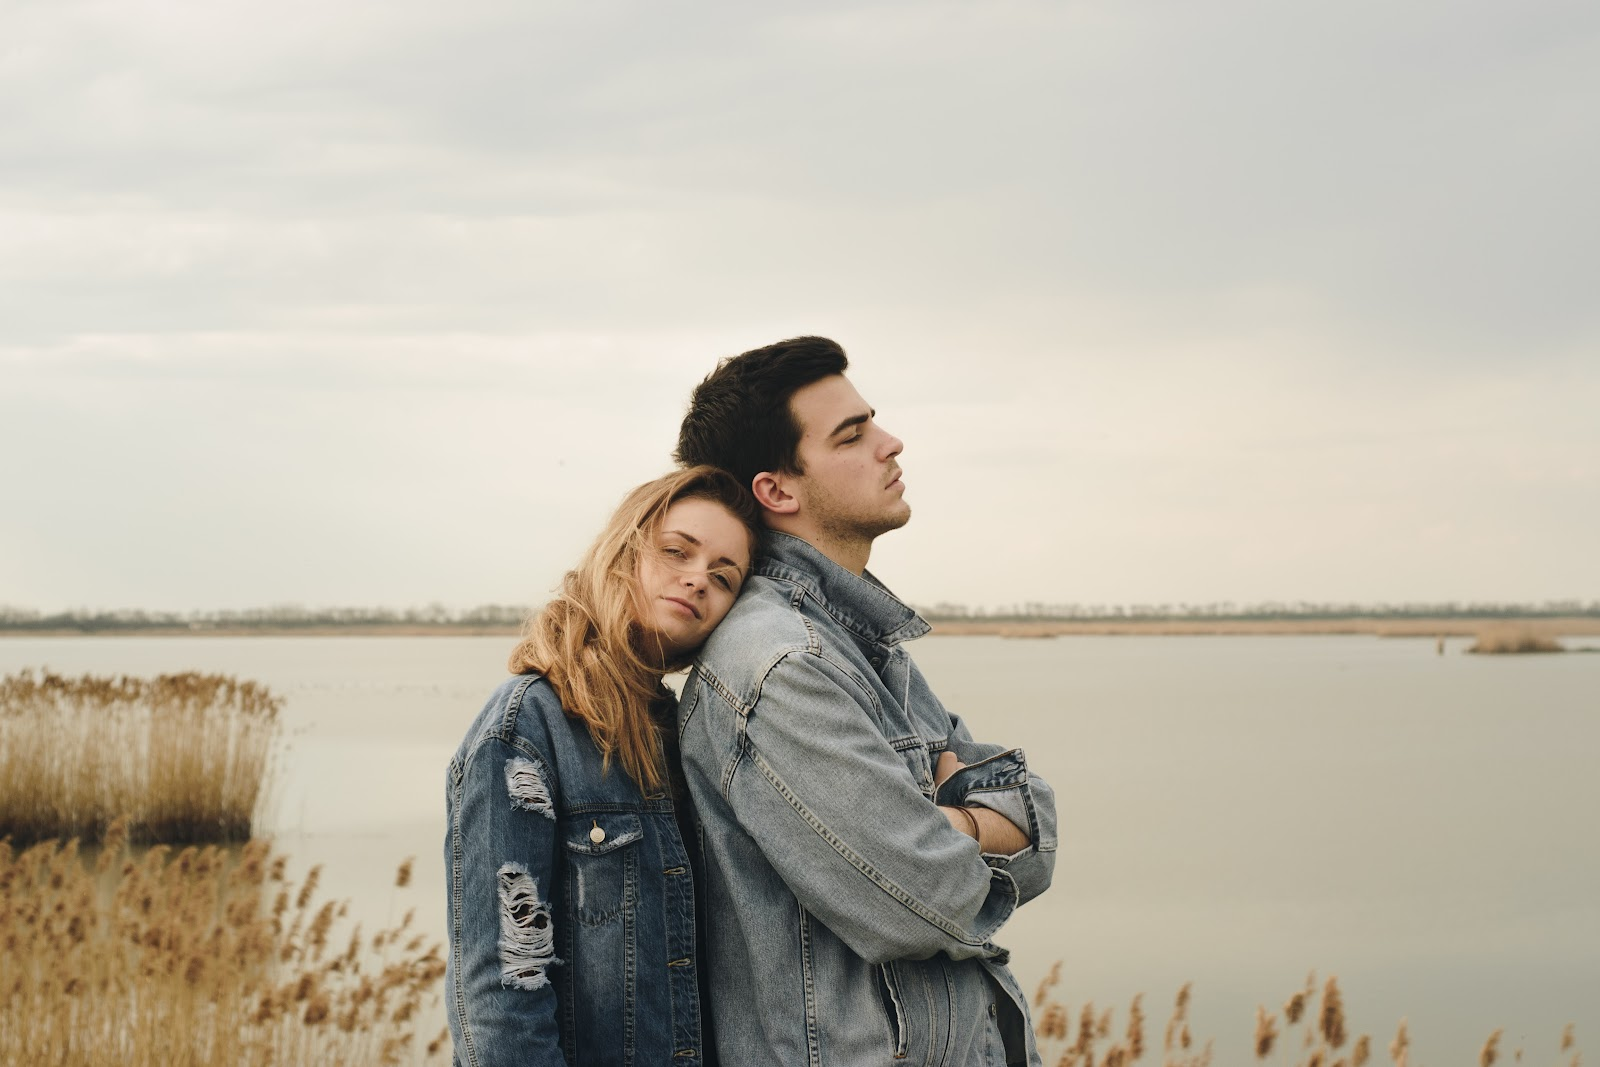 Why am I desperate for a girlfriend? (8 Reasons)